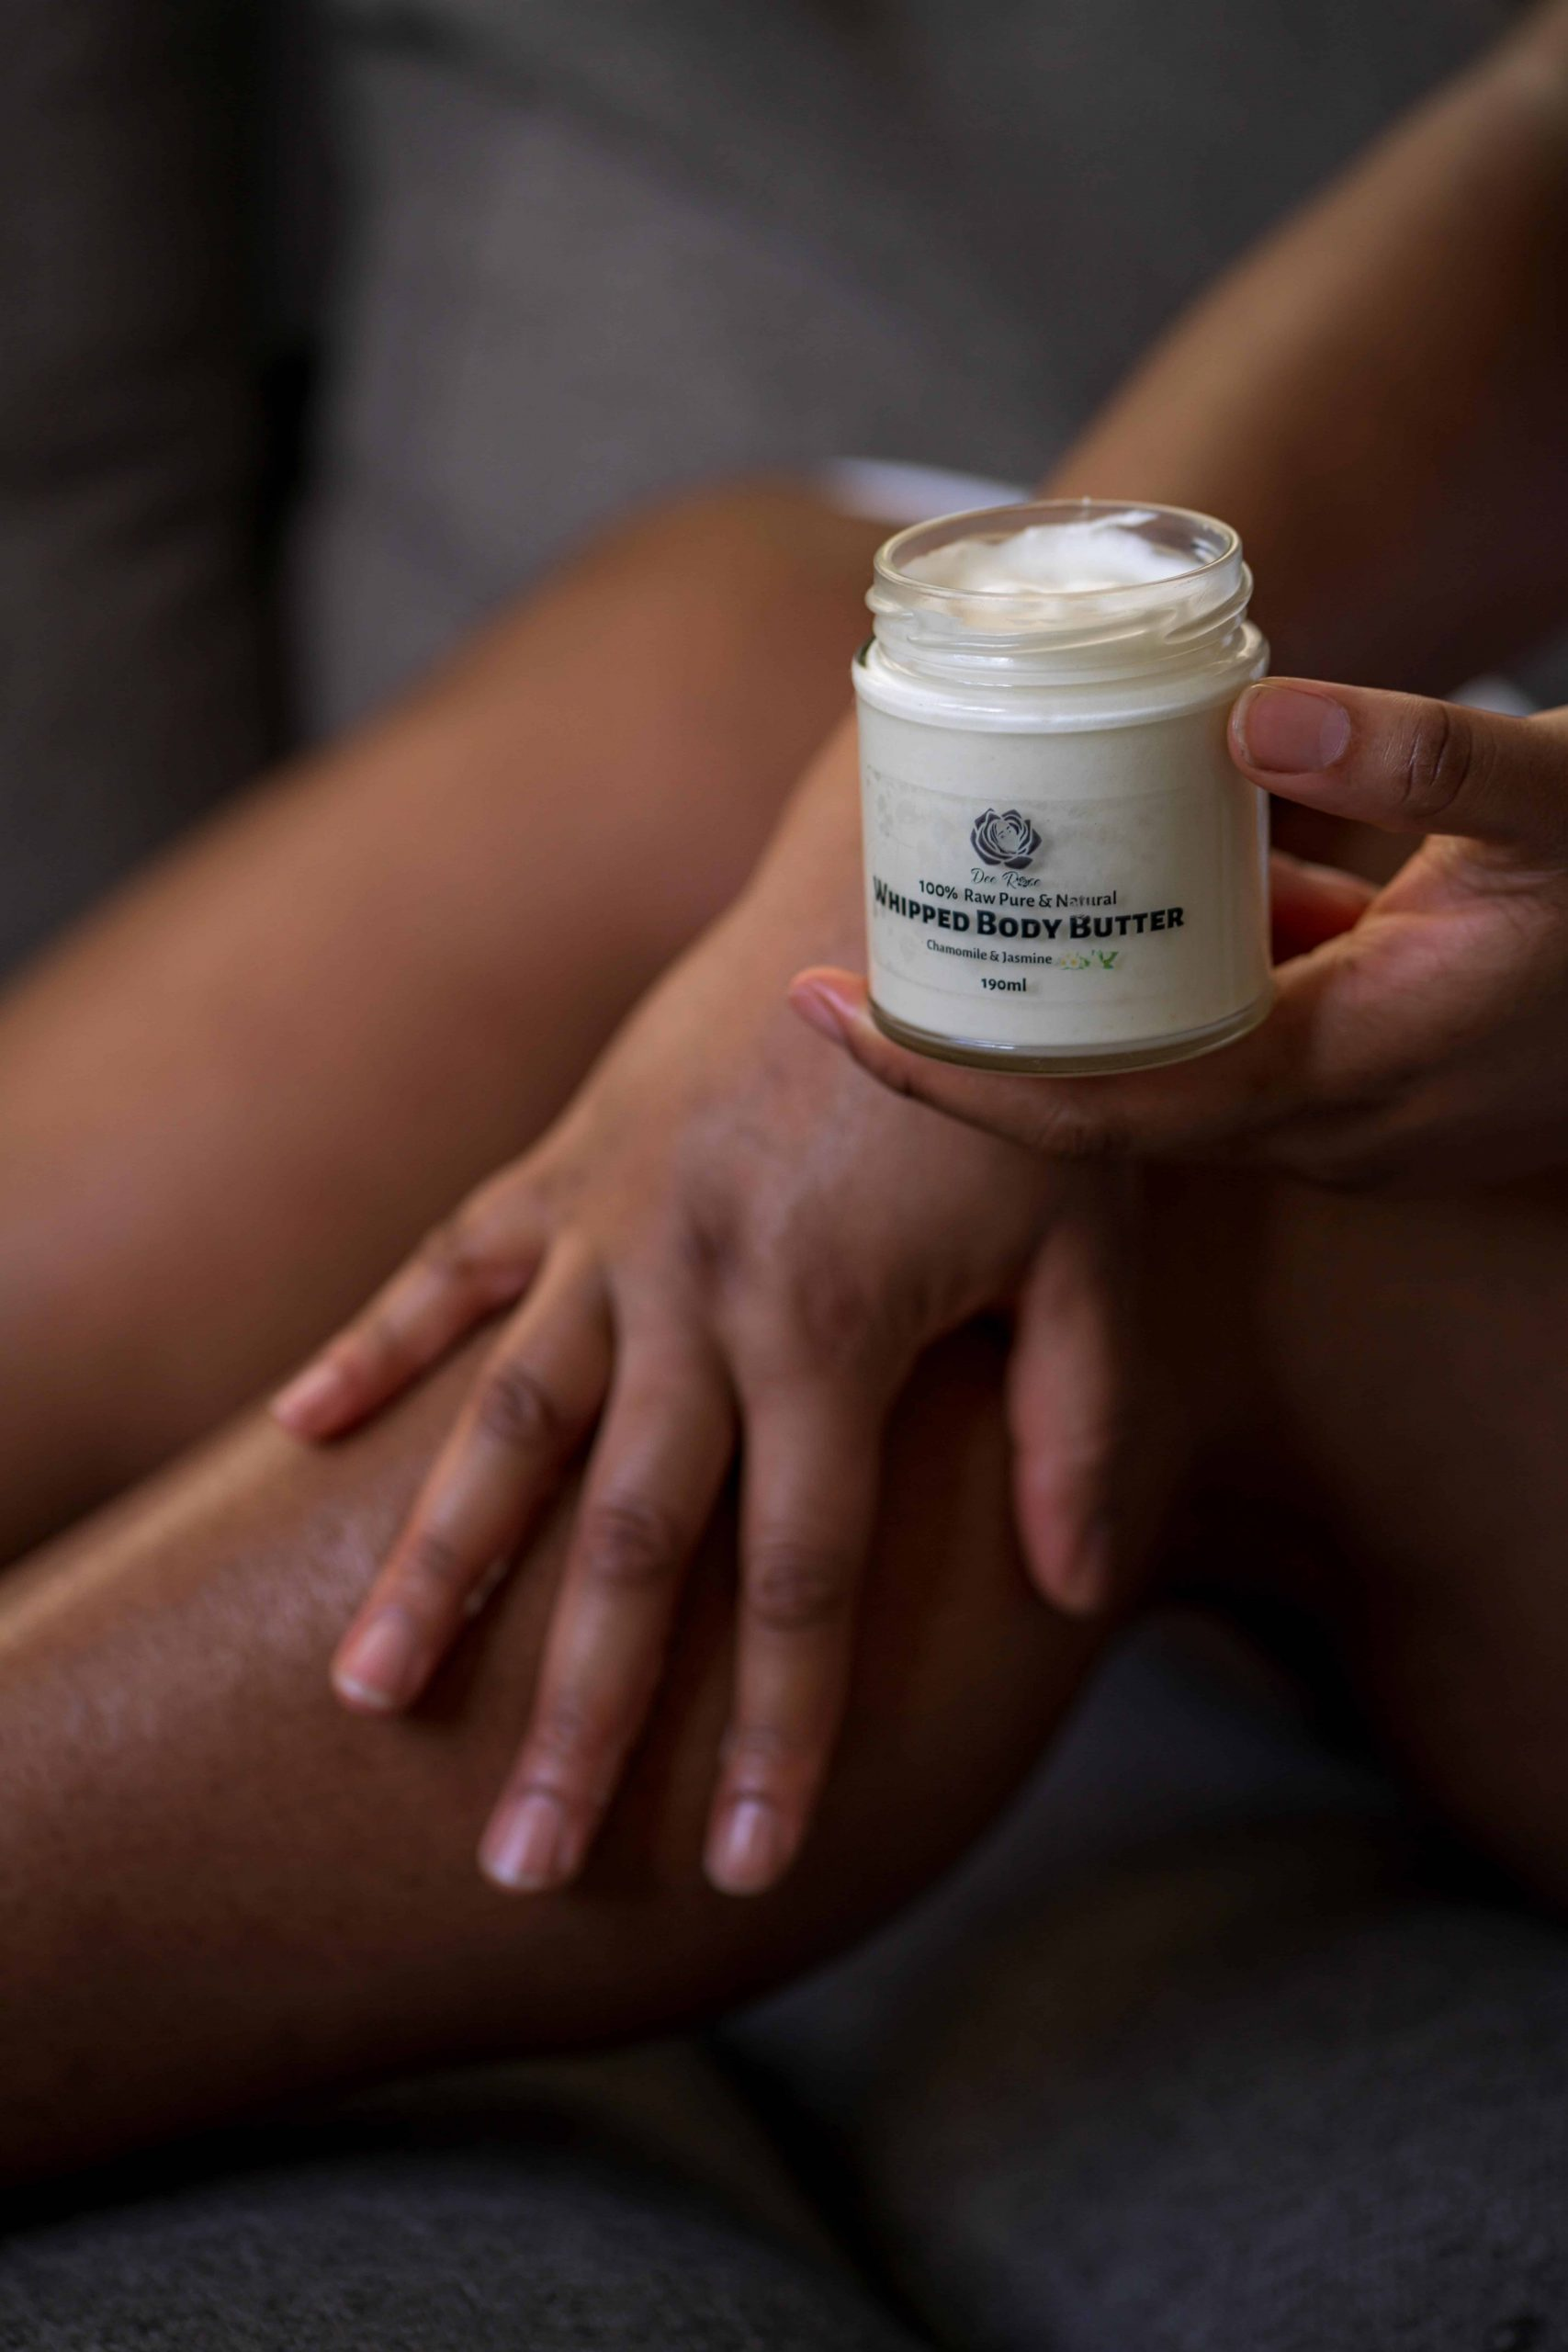 dee rose body butter cz scaled